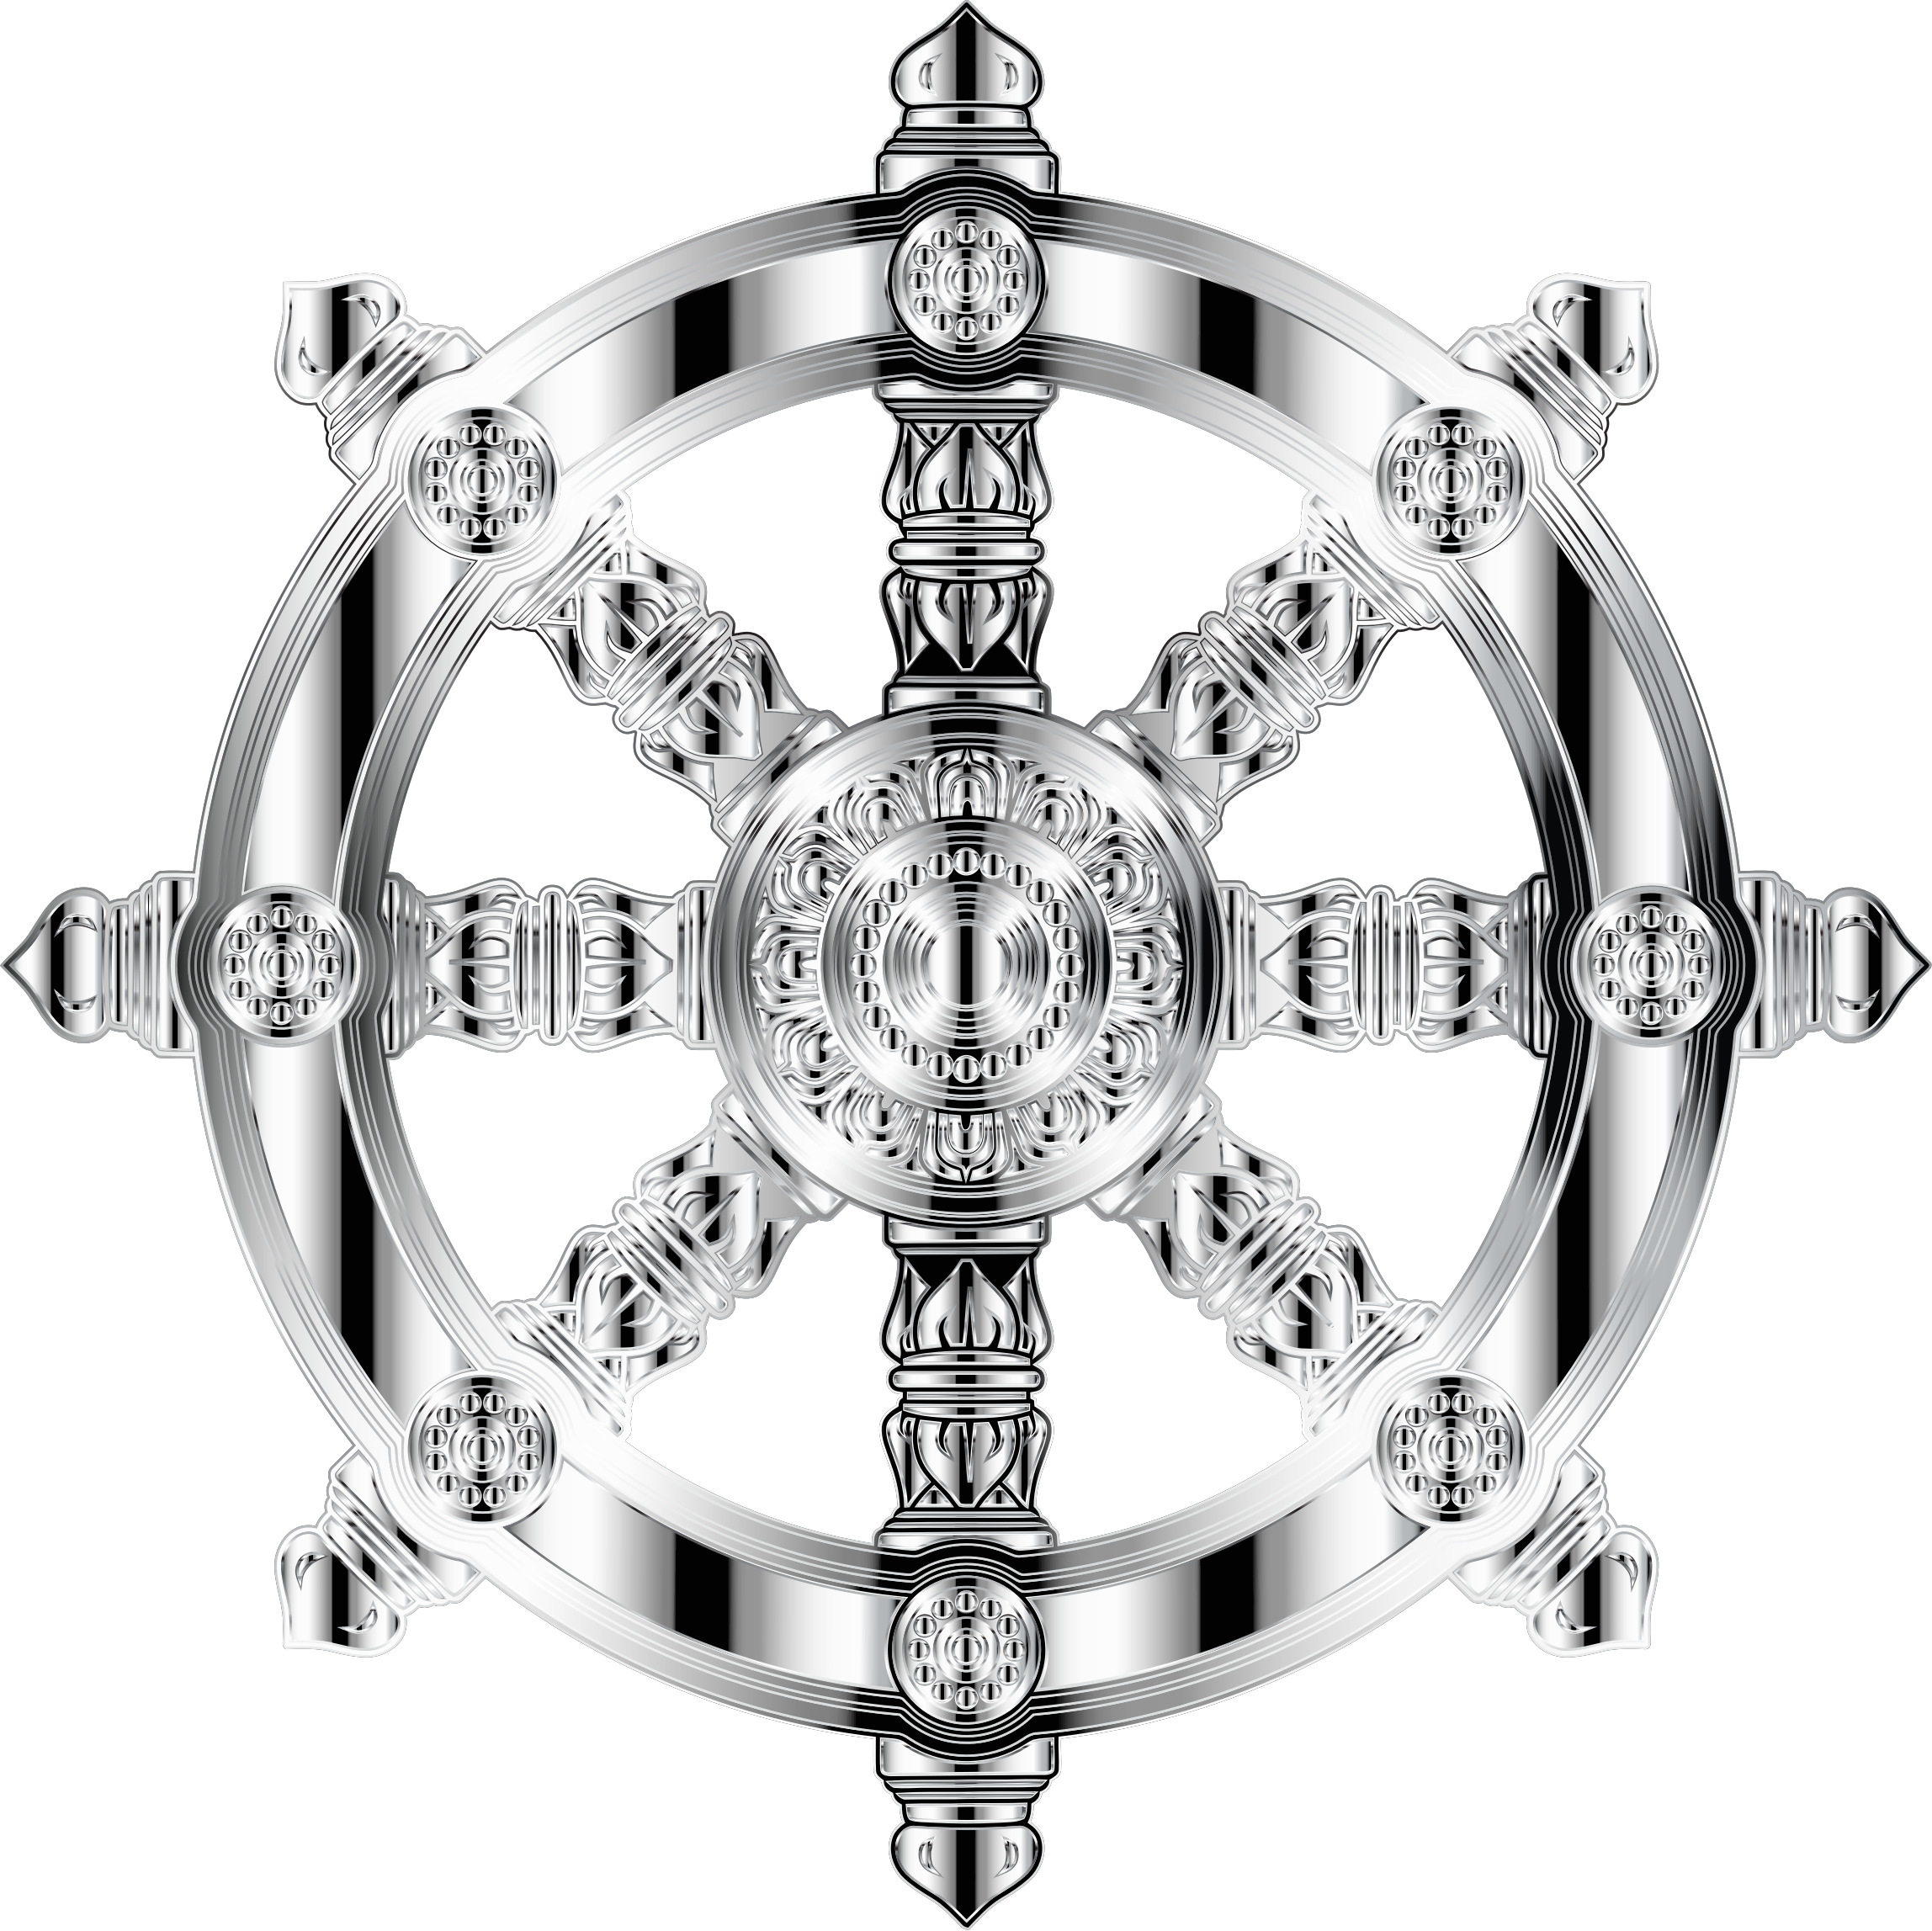 Mirrored Chrome Ornate Dharma Wheel 2 by GDJ